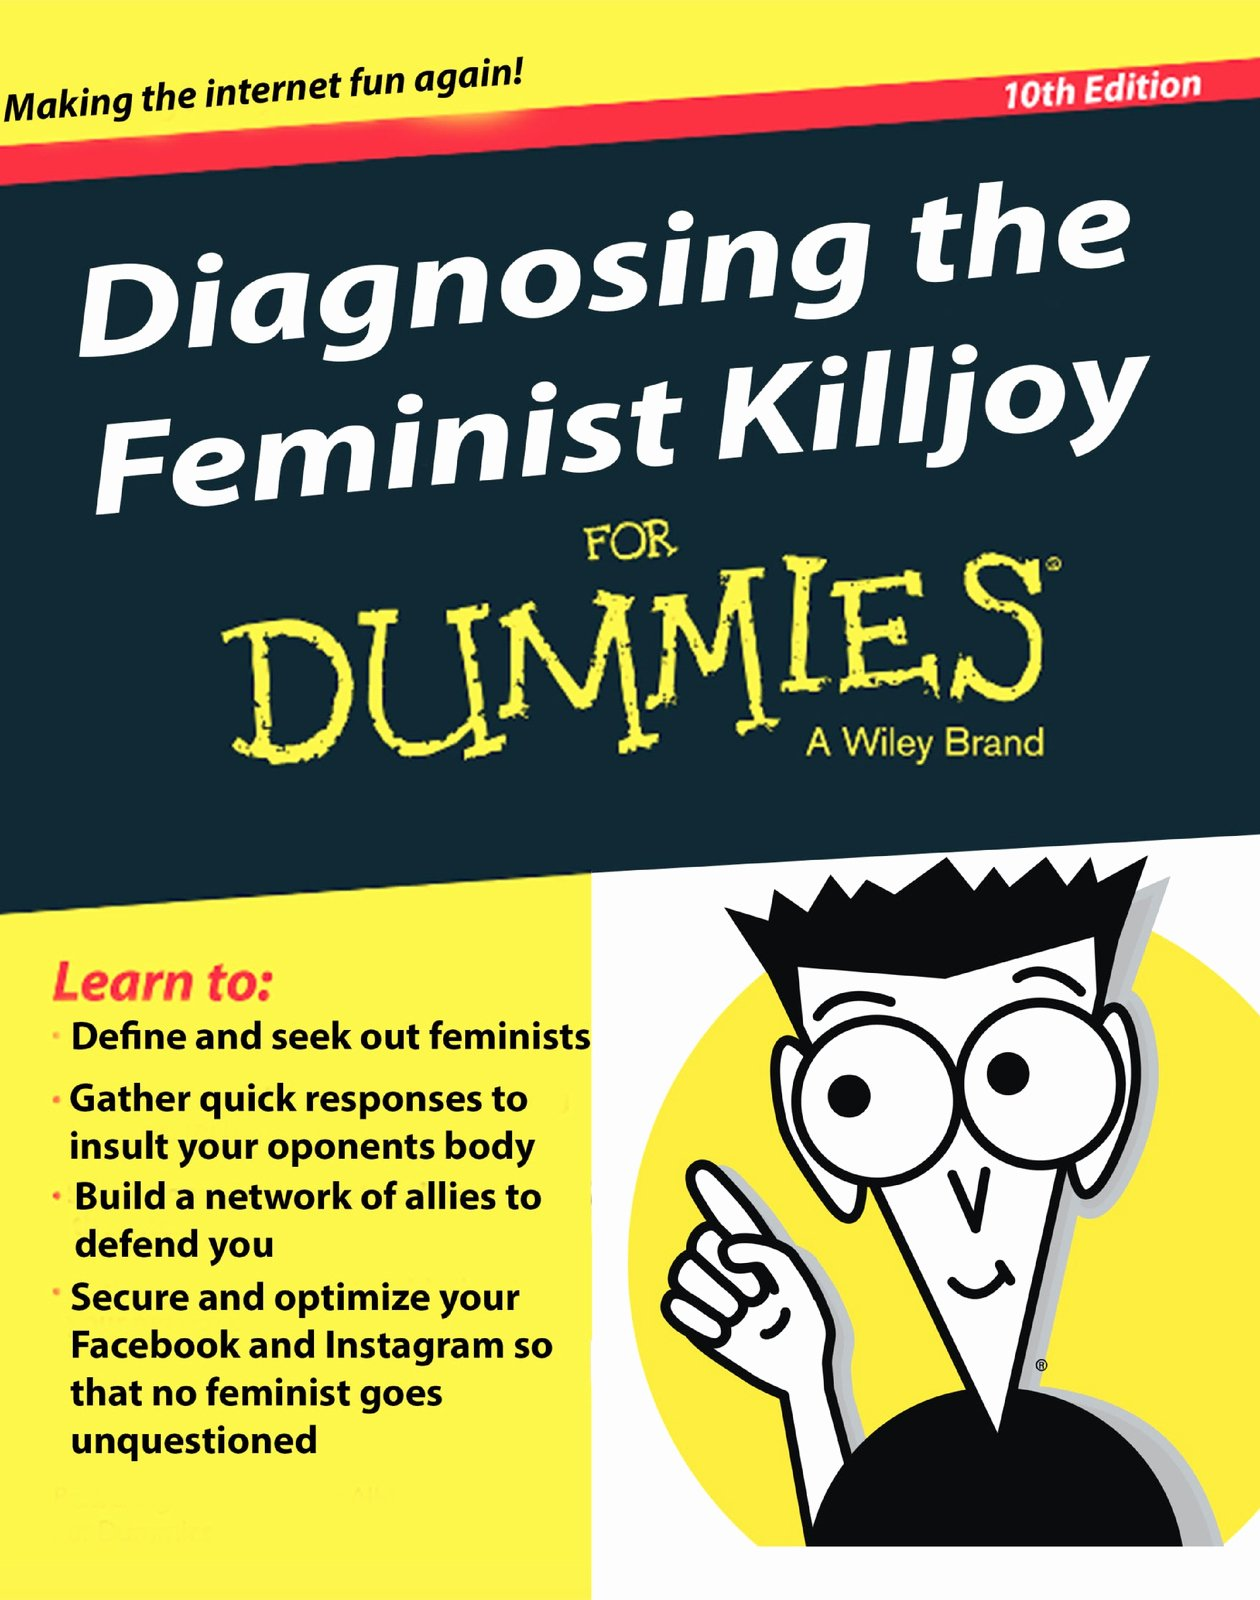 Book for Dummies Template New Diagnosing the Feminist Killjoy for Dummies